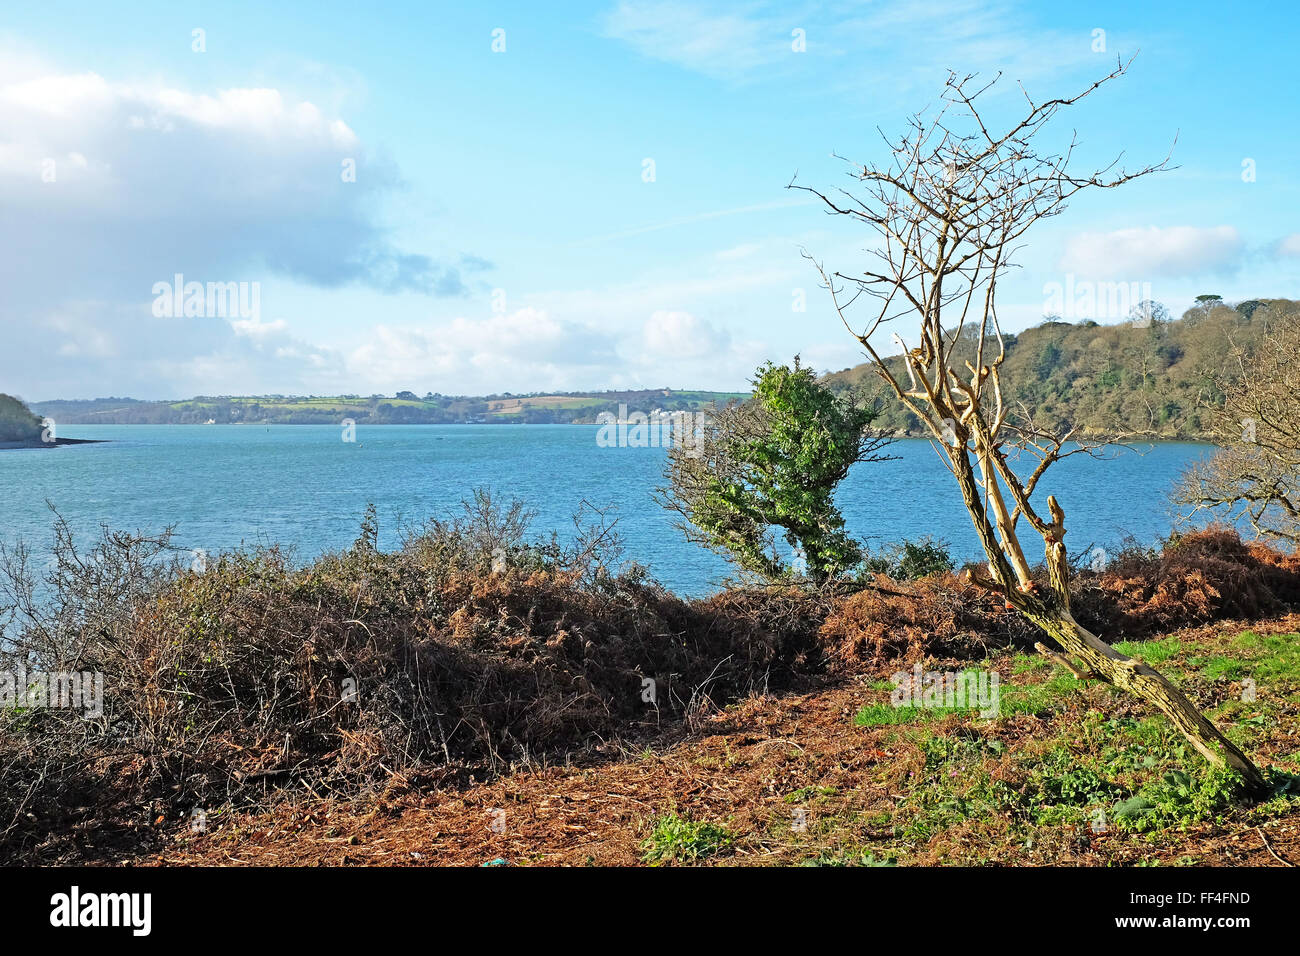 Looking out towards the Carrick Roads on the River Fal in Cornwall, England, UK - Stock Image